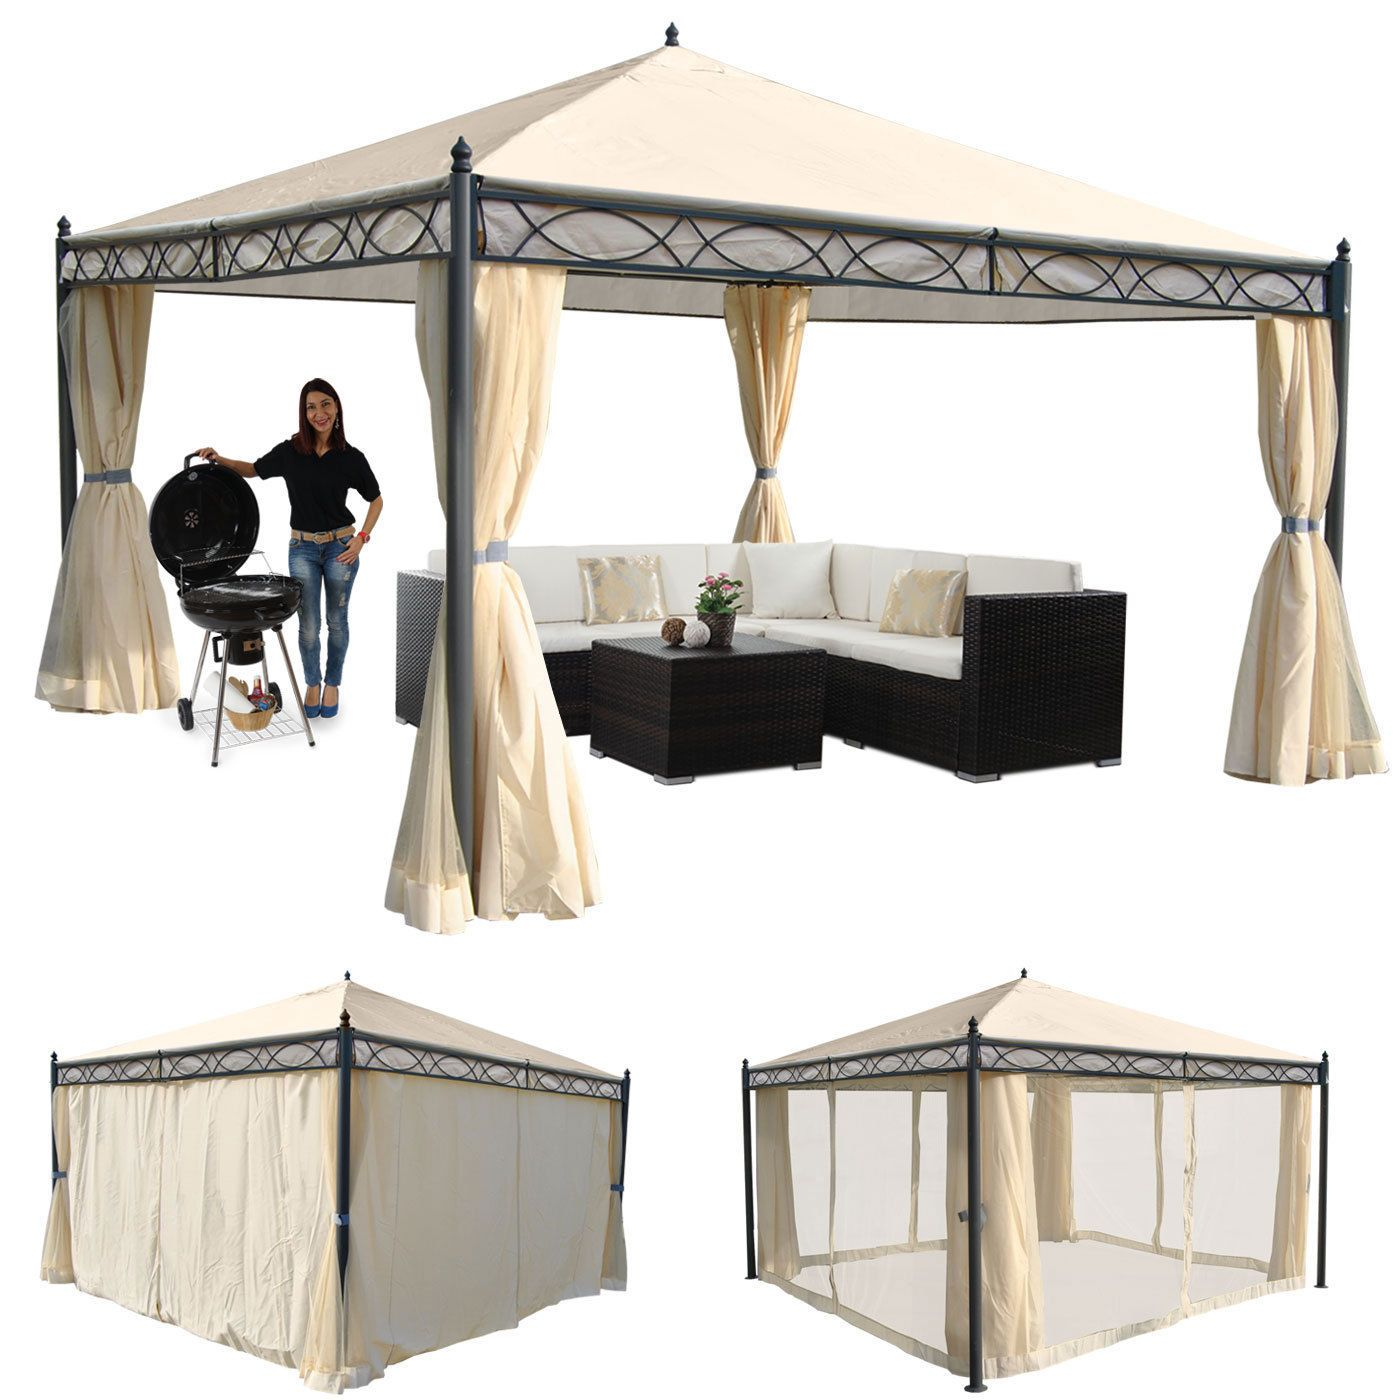 pergola cadiz garten pavillon 7cm gestell mit seitenwand moskitonetz jardiner a. Black Bedroom Furniture Sets. Home Design Ideas